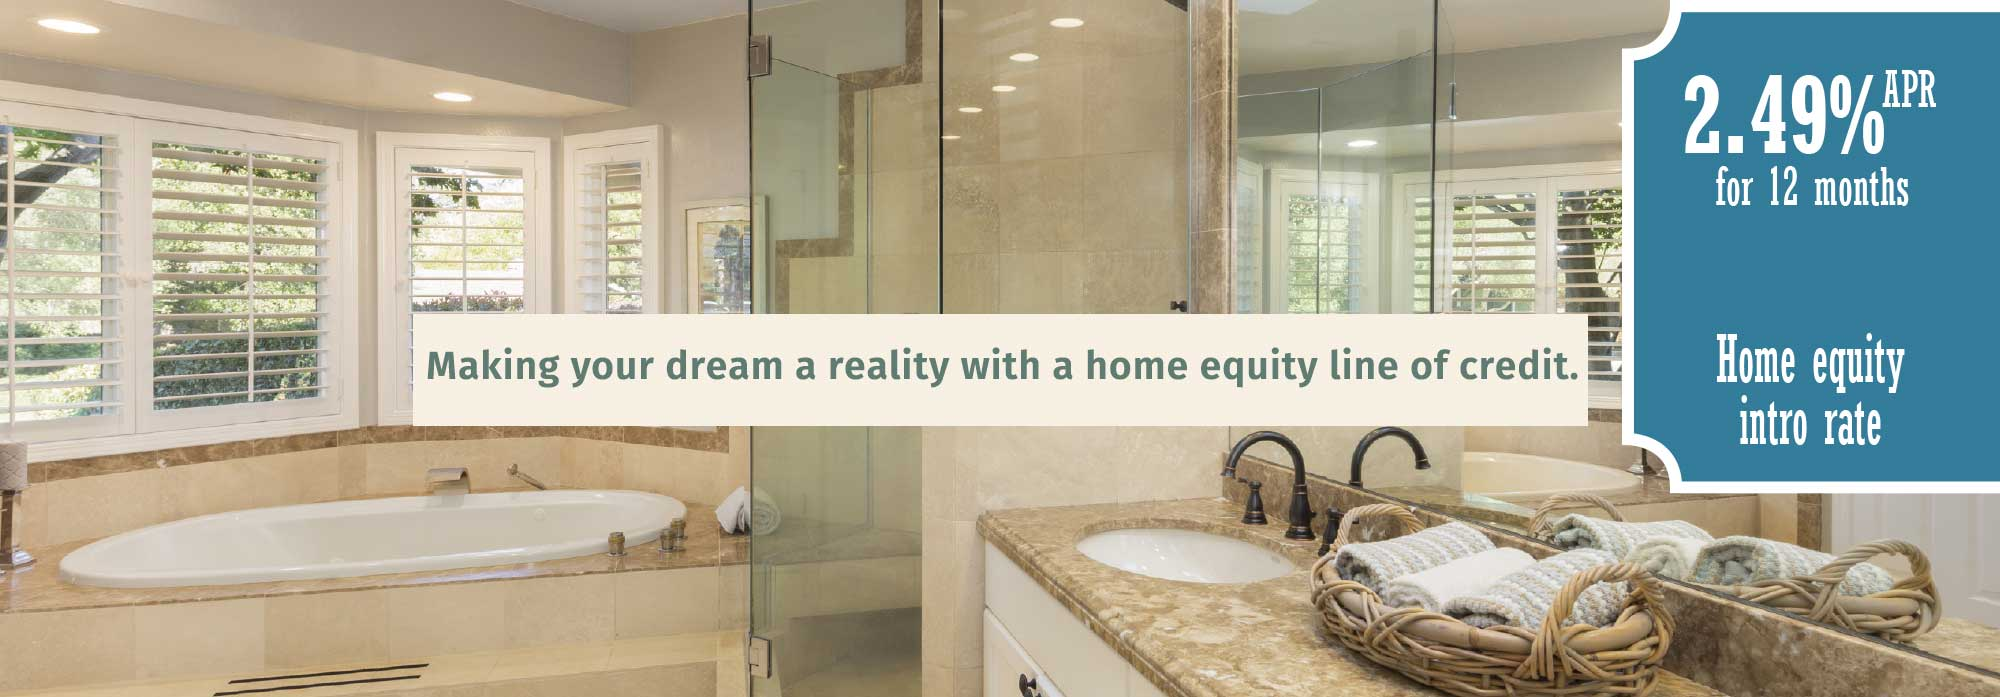 Making your dream a reality with a home equity line of credit